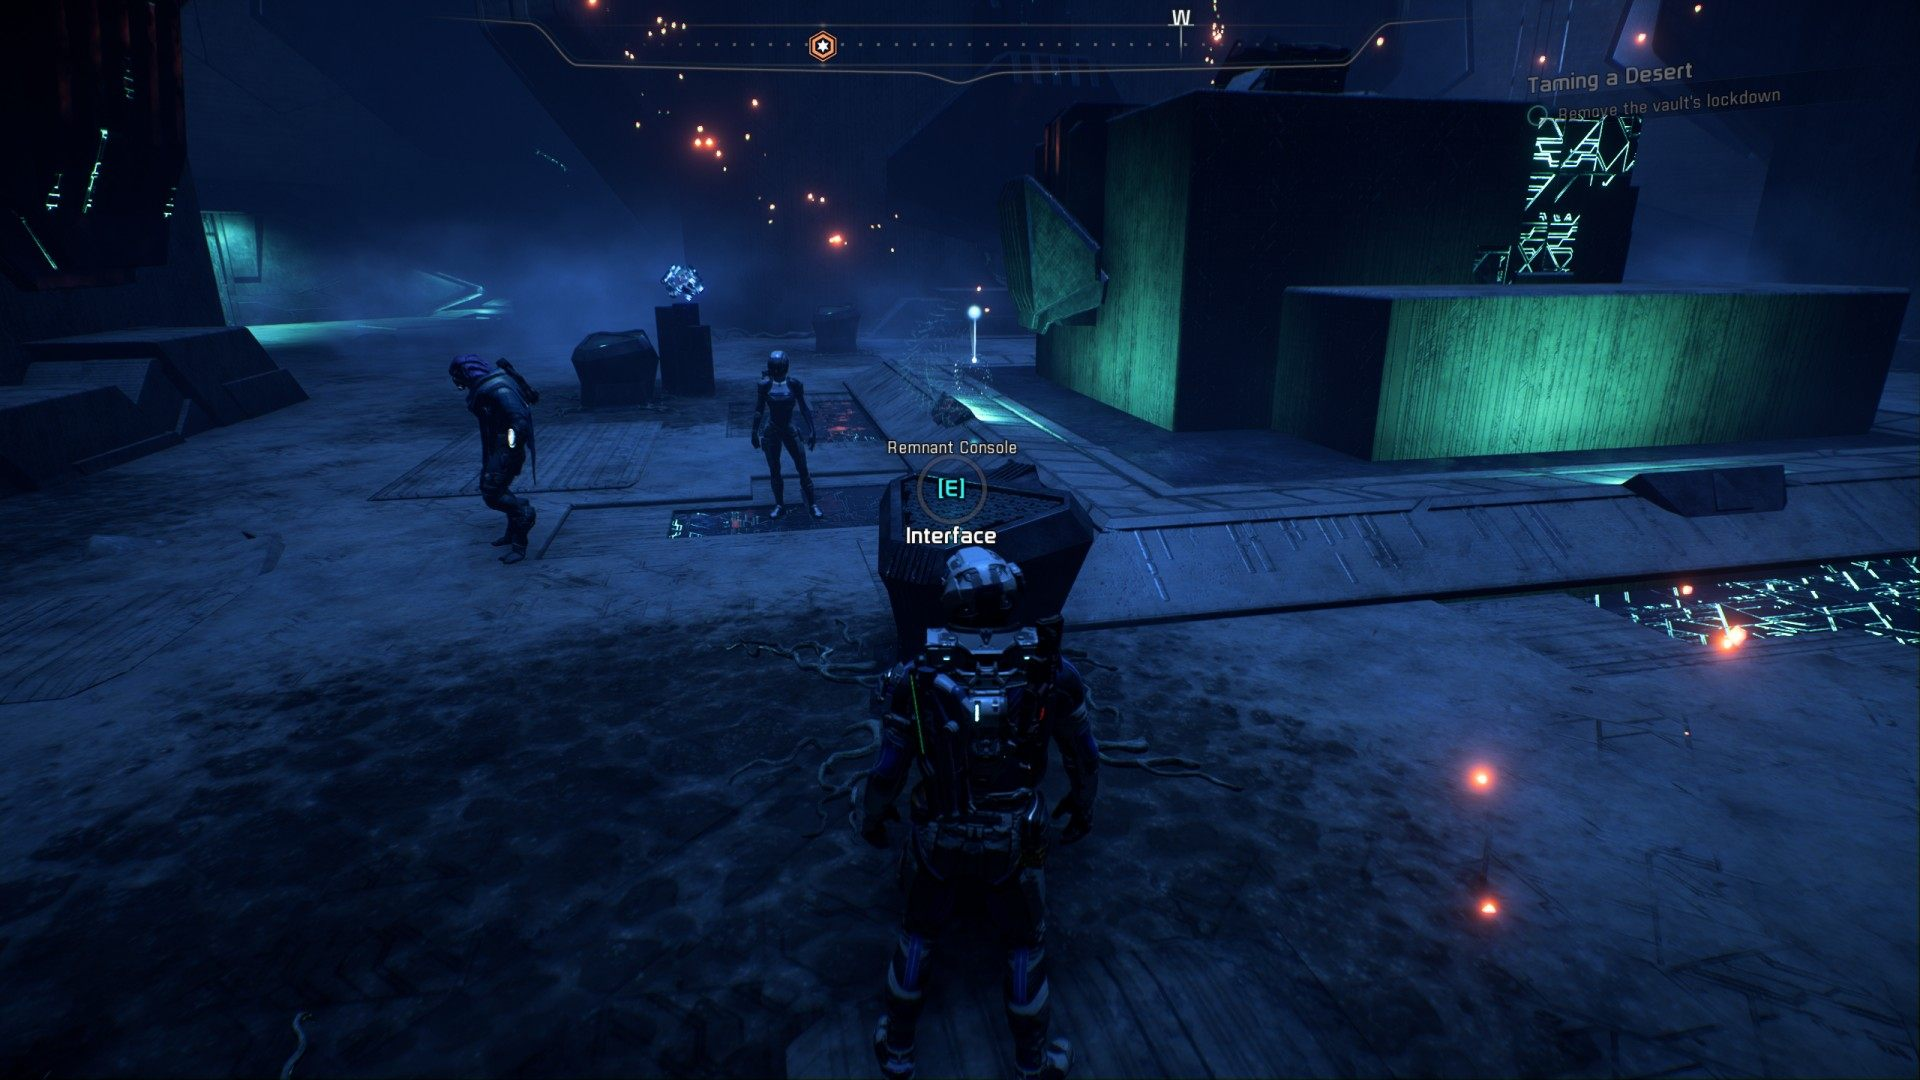 Taming A Desert Mass Effect Andromeda Mission